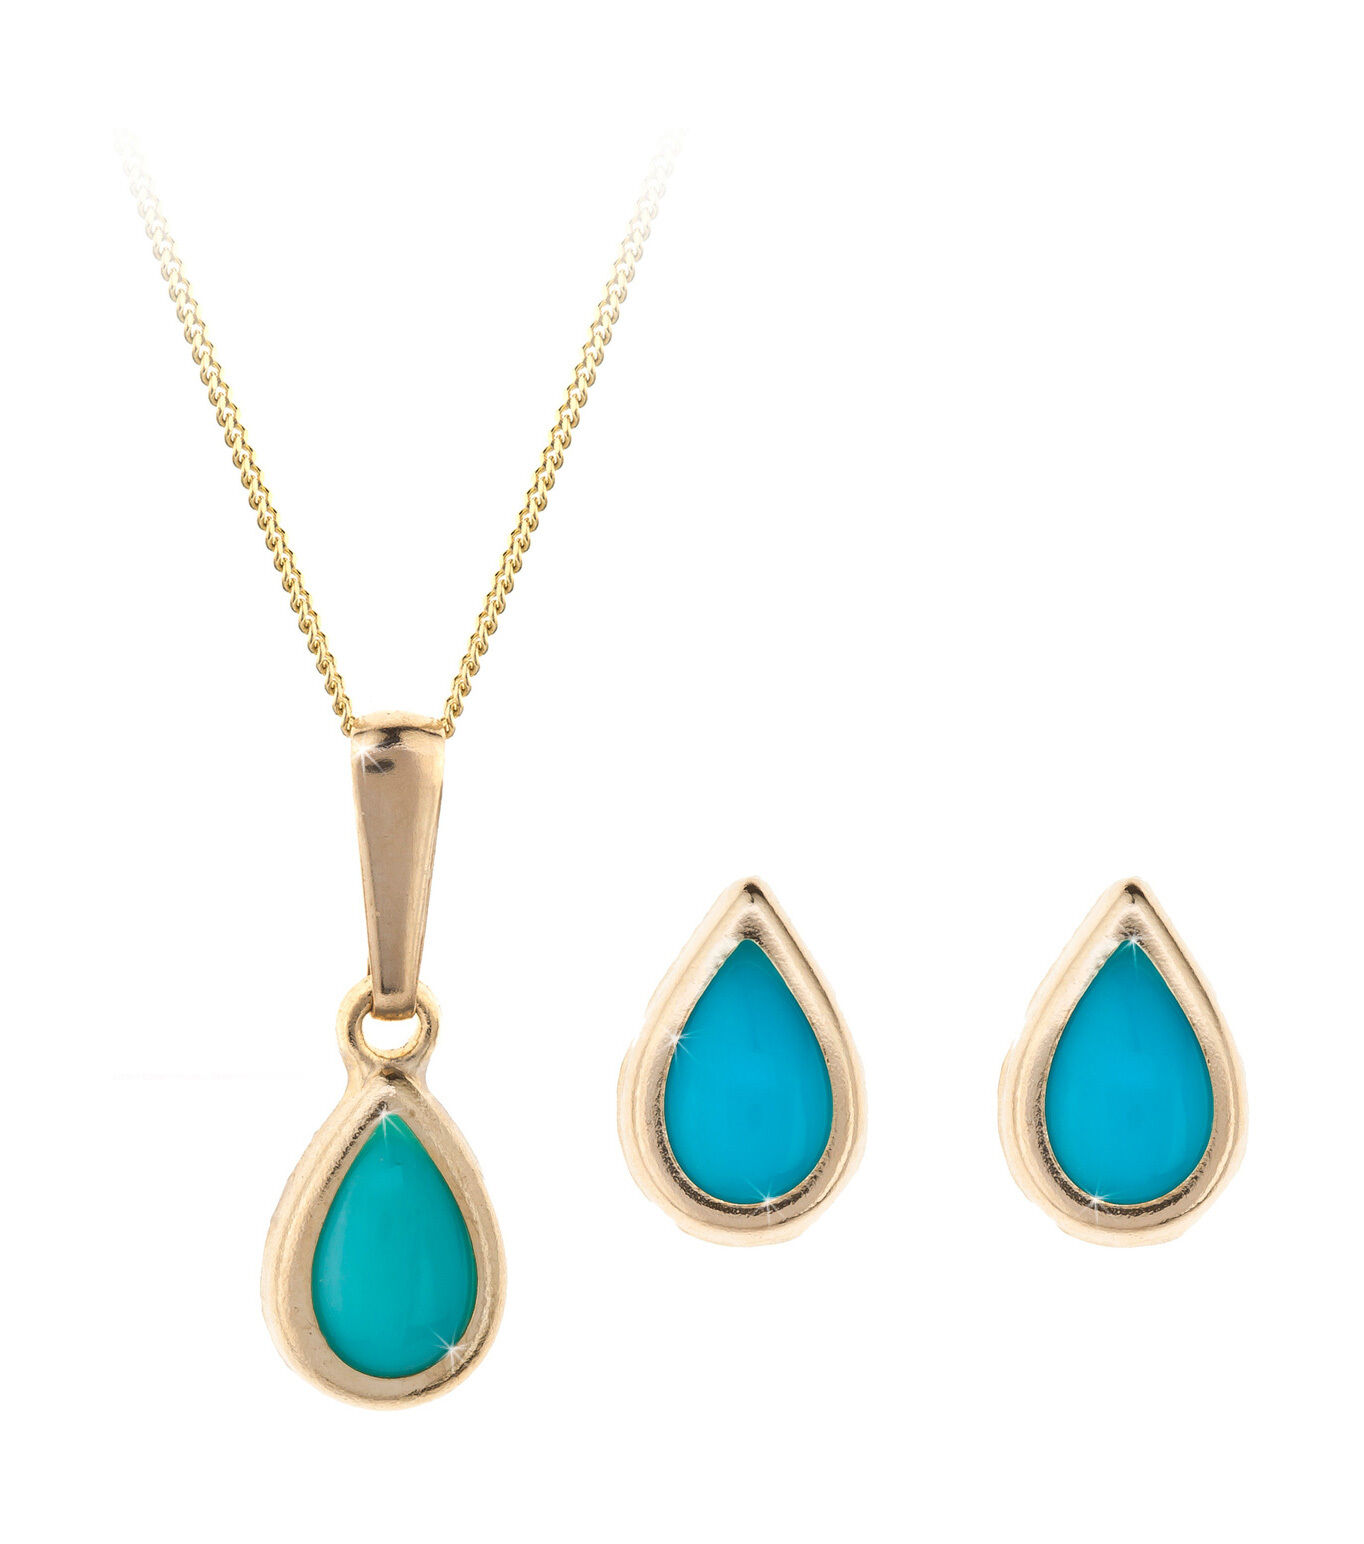 9ct gold December (turquoise) birthstone earring, pendant & chain set. Gift box